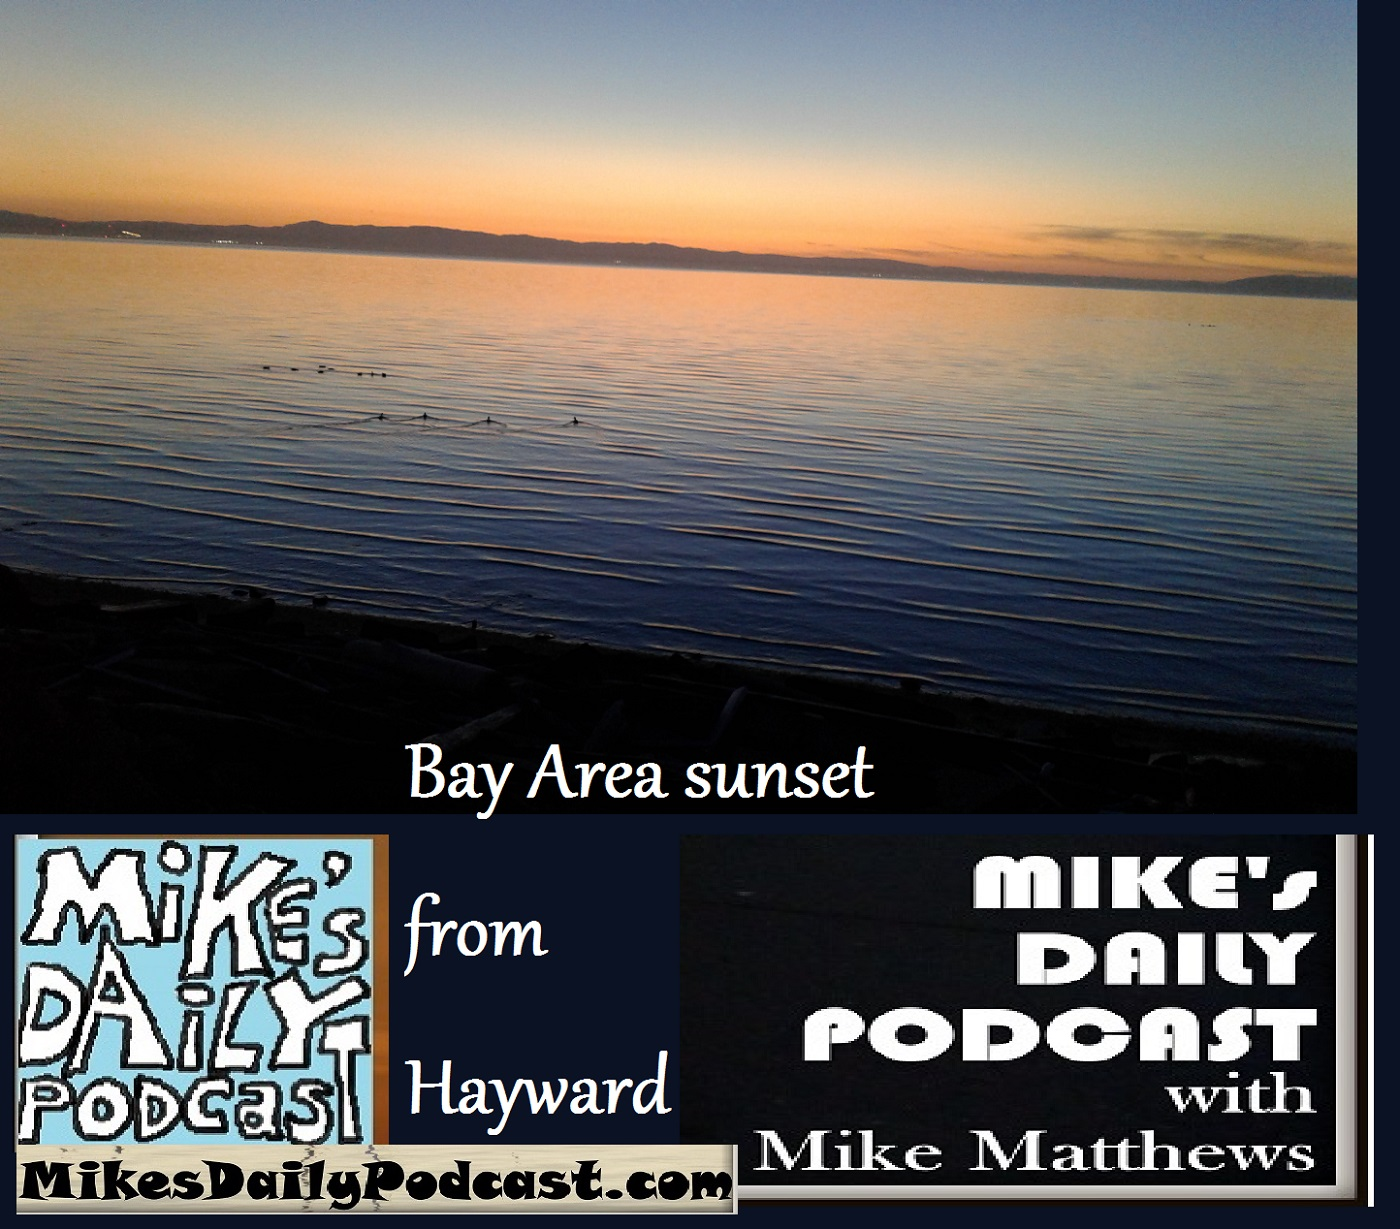 mikes-daily-podcast-1213-bay-area-sunset-hayward